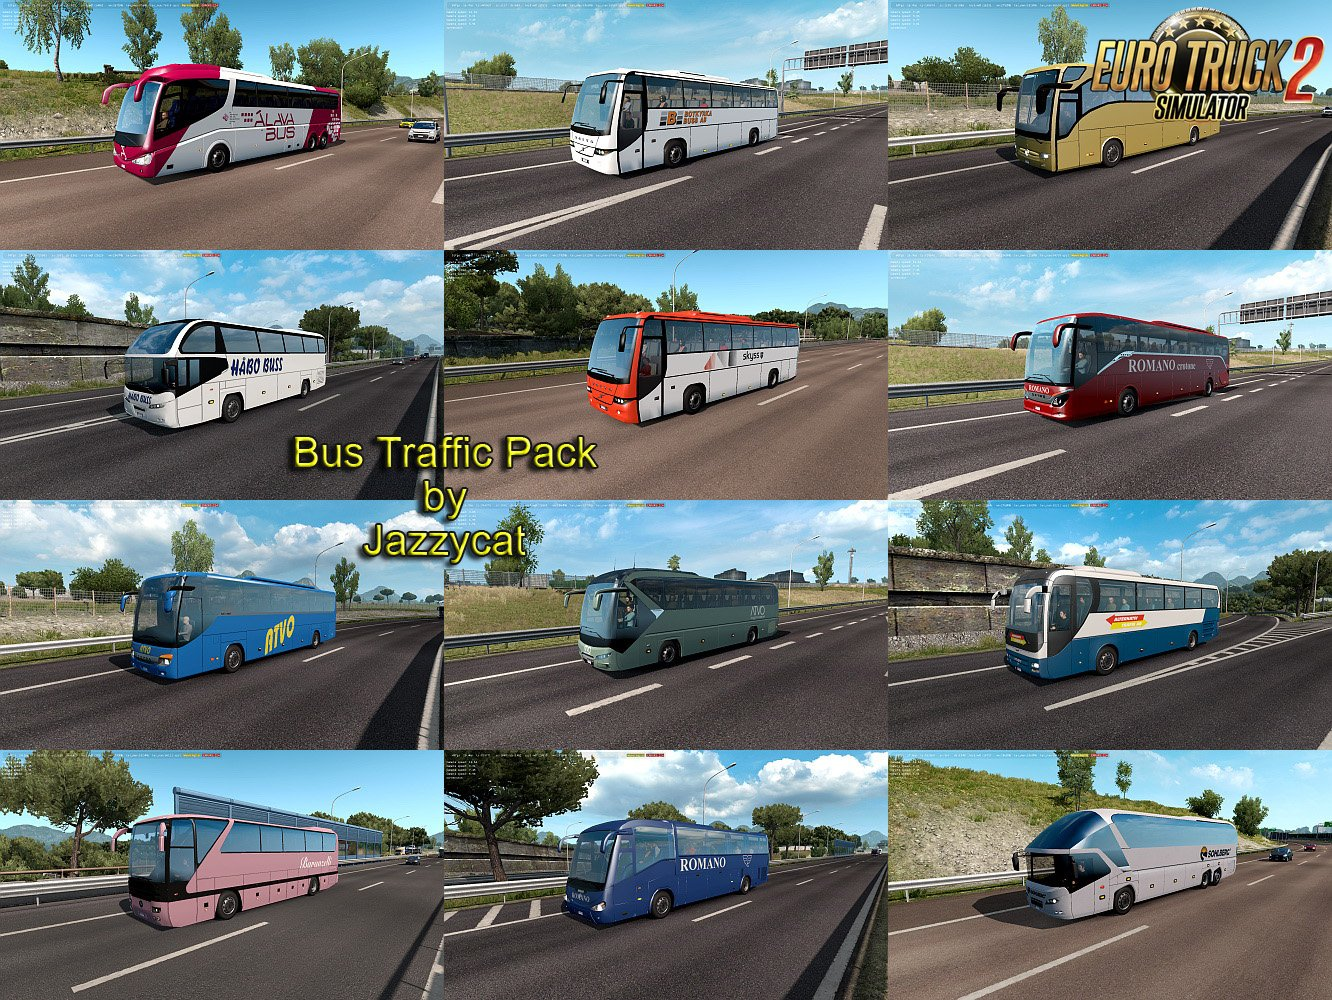 Bus Traffic Pack v5.3 by Jazzycat